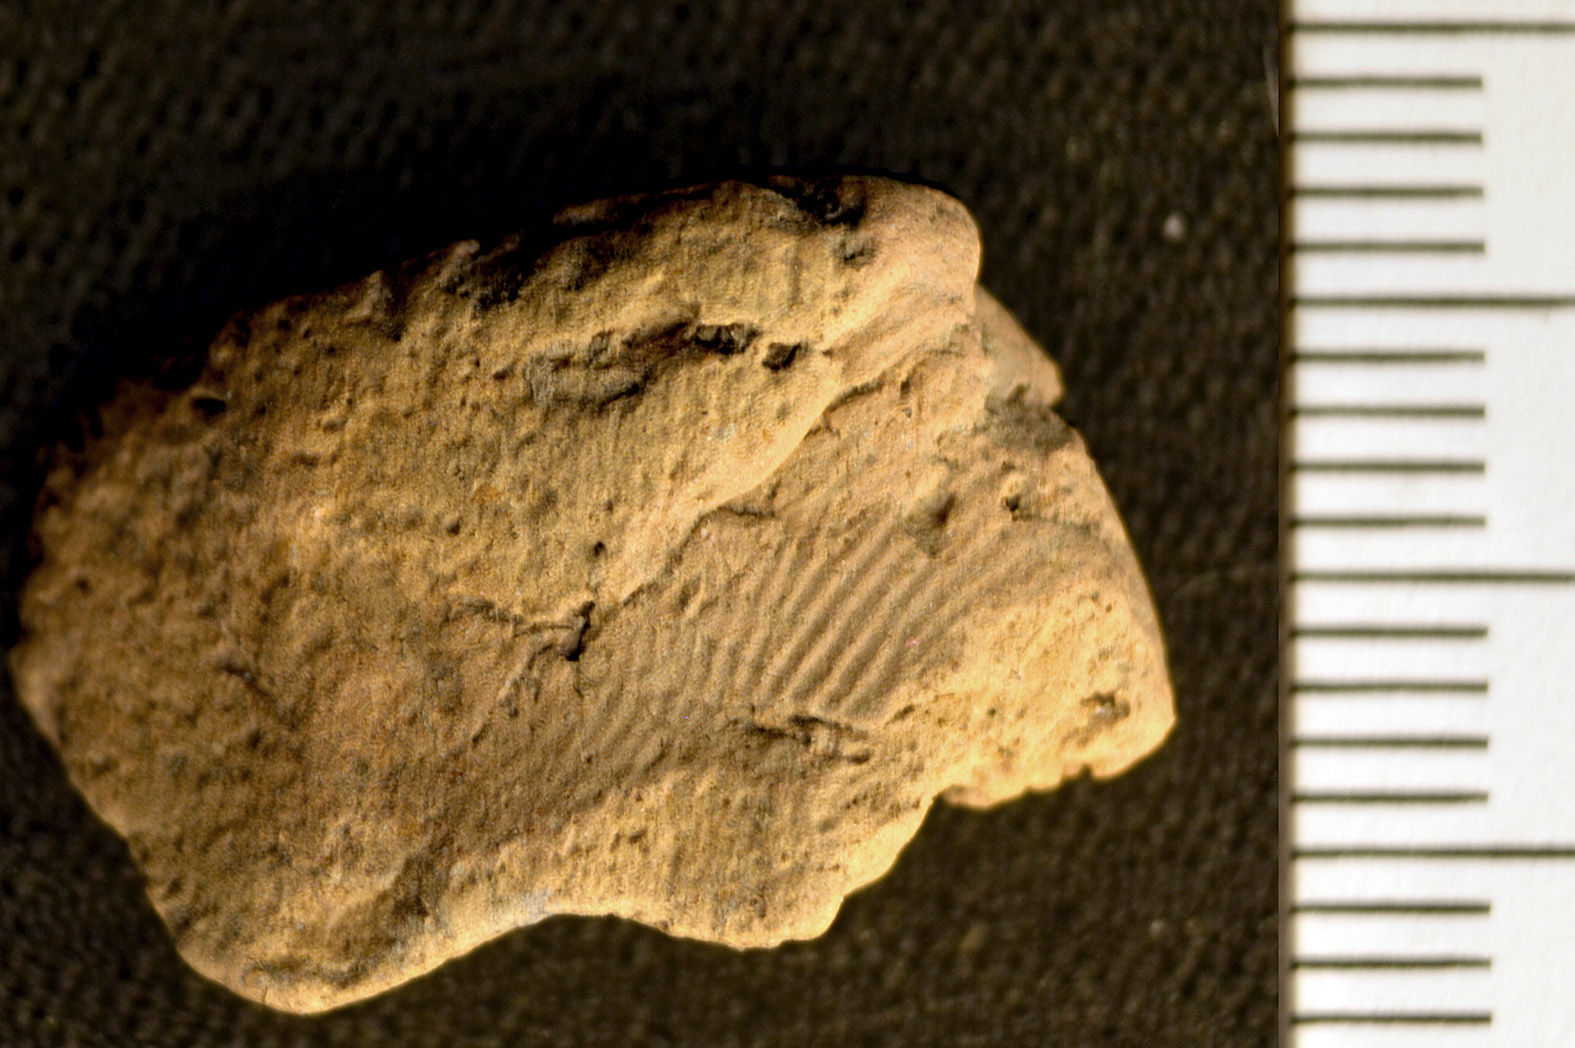 Ness of Brodgar project finds 5,000-year-old fingerprint